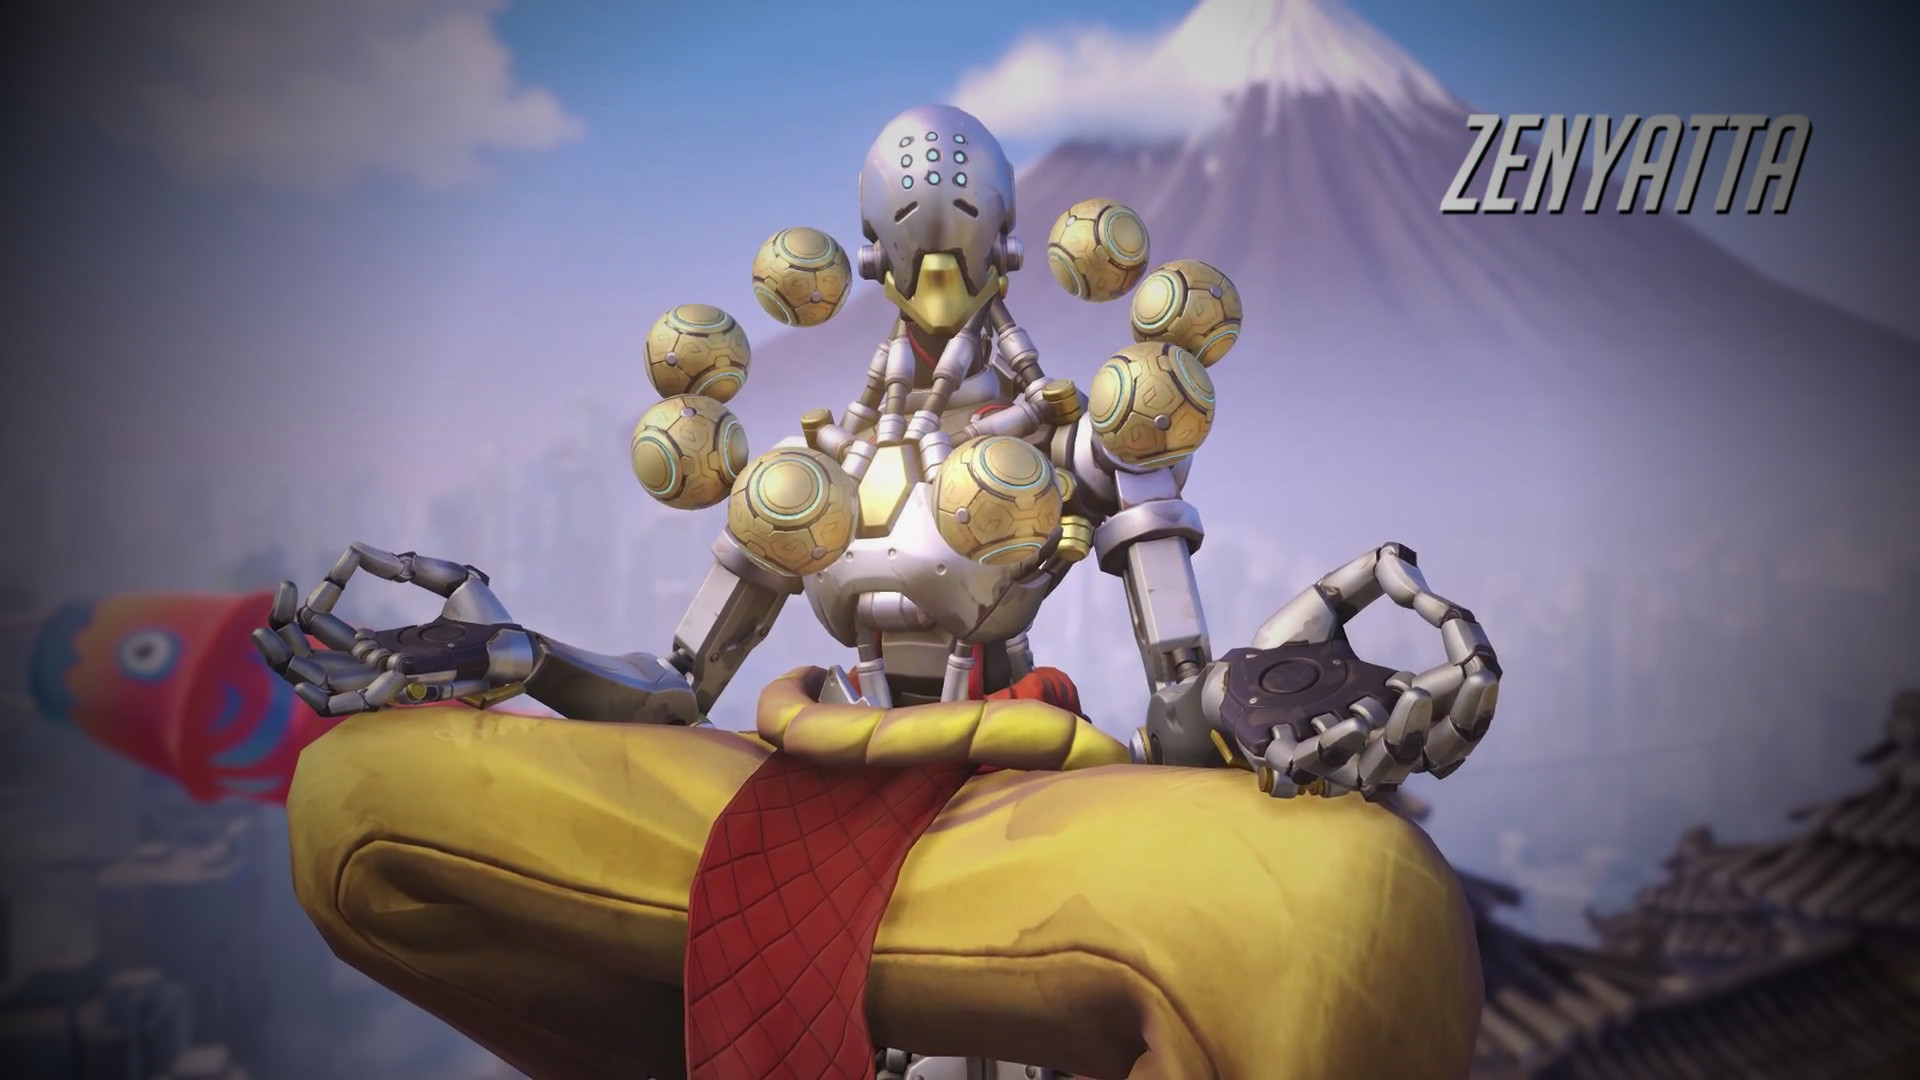 1920x1080 Overwatch Zenyatta Wallpaper High Resolution Is Cool Wallpapers